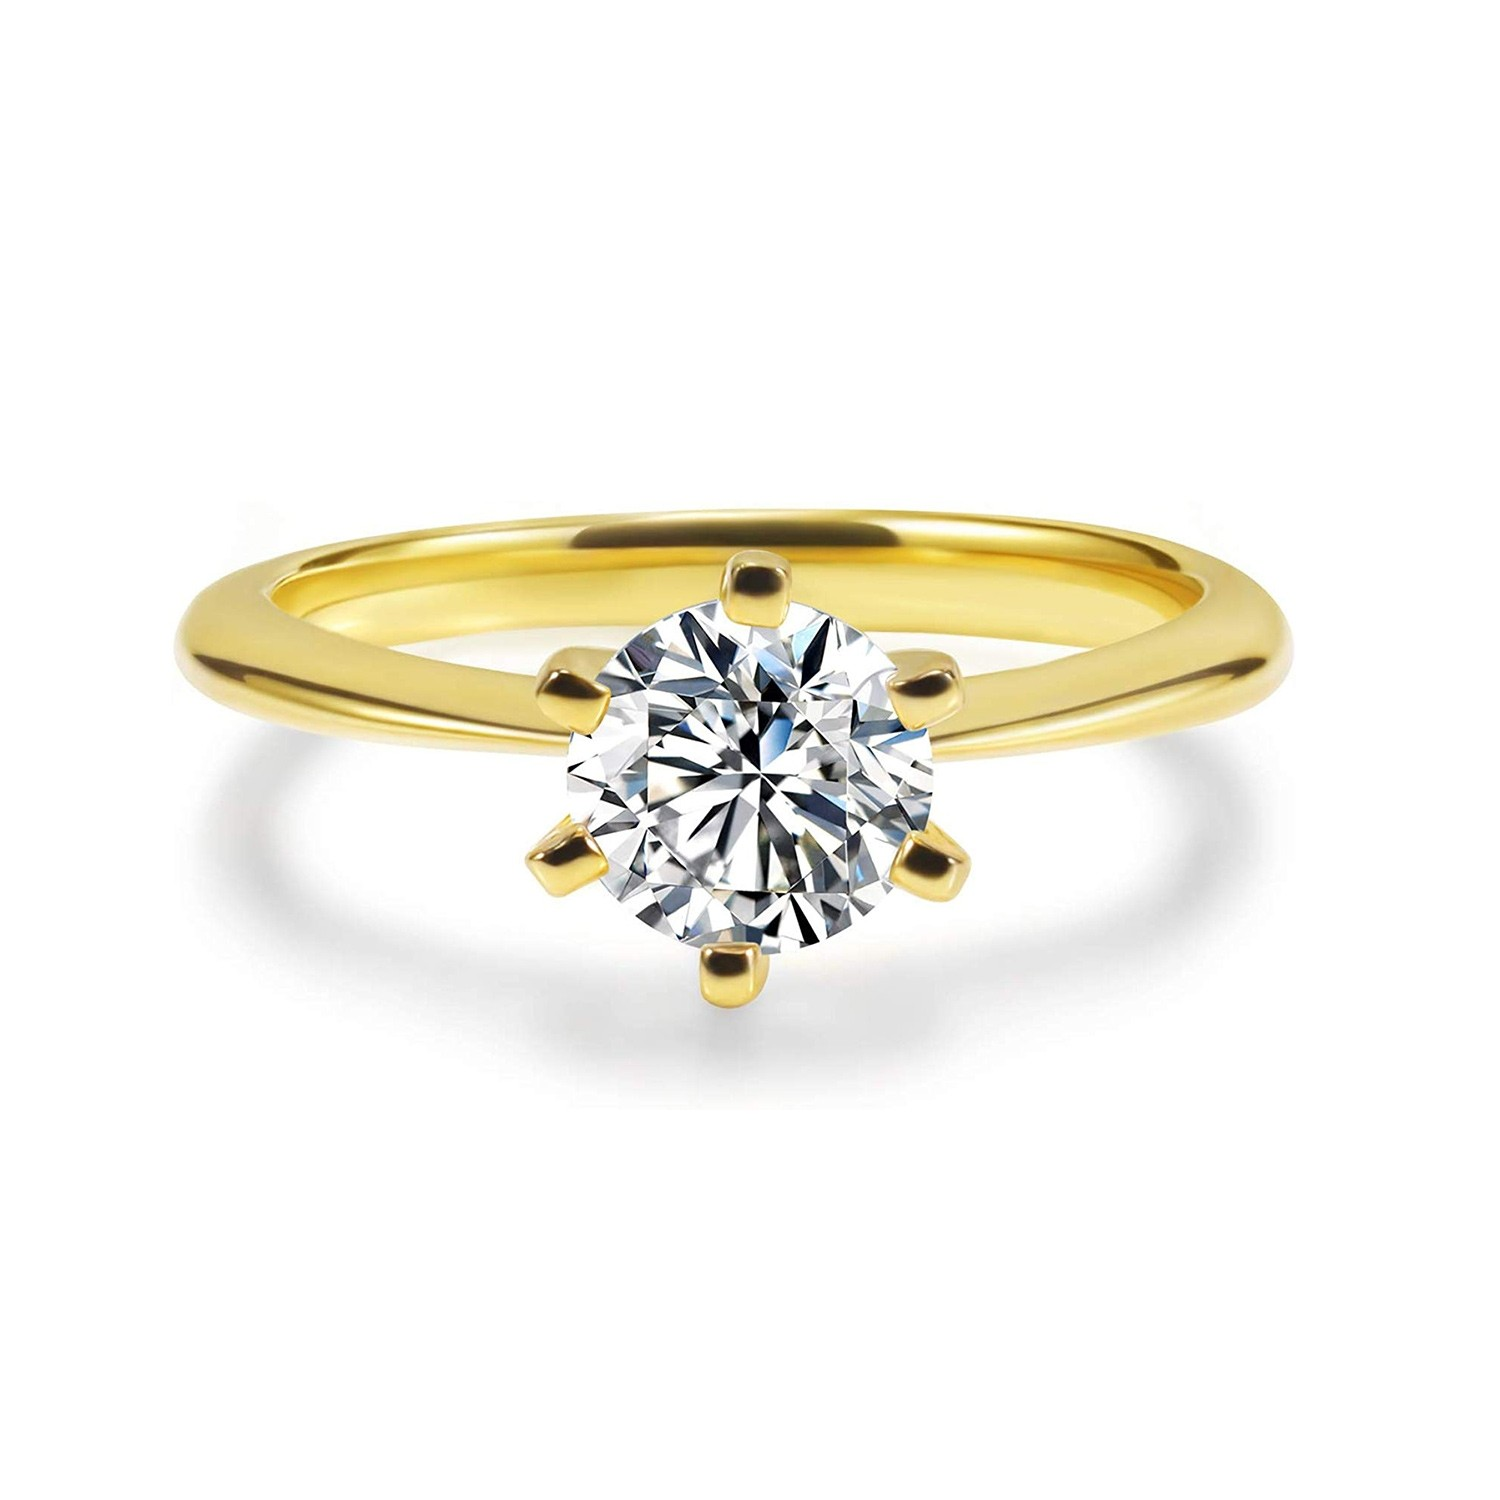 1 Carat Sona Diamond Engagement Rings Gold Plated In 925 Sterling